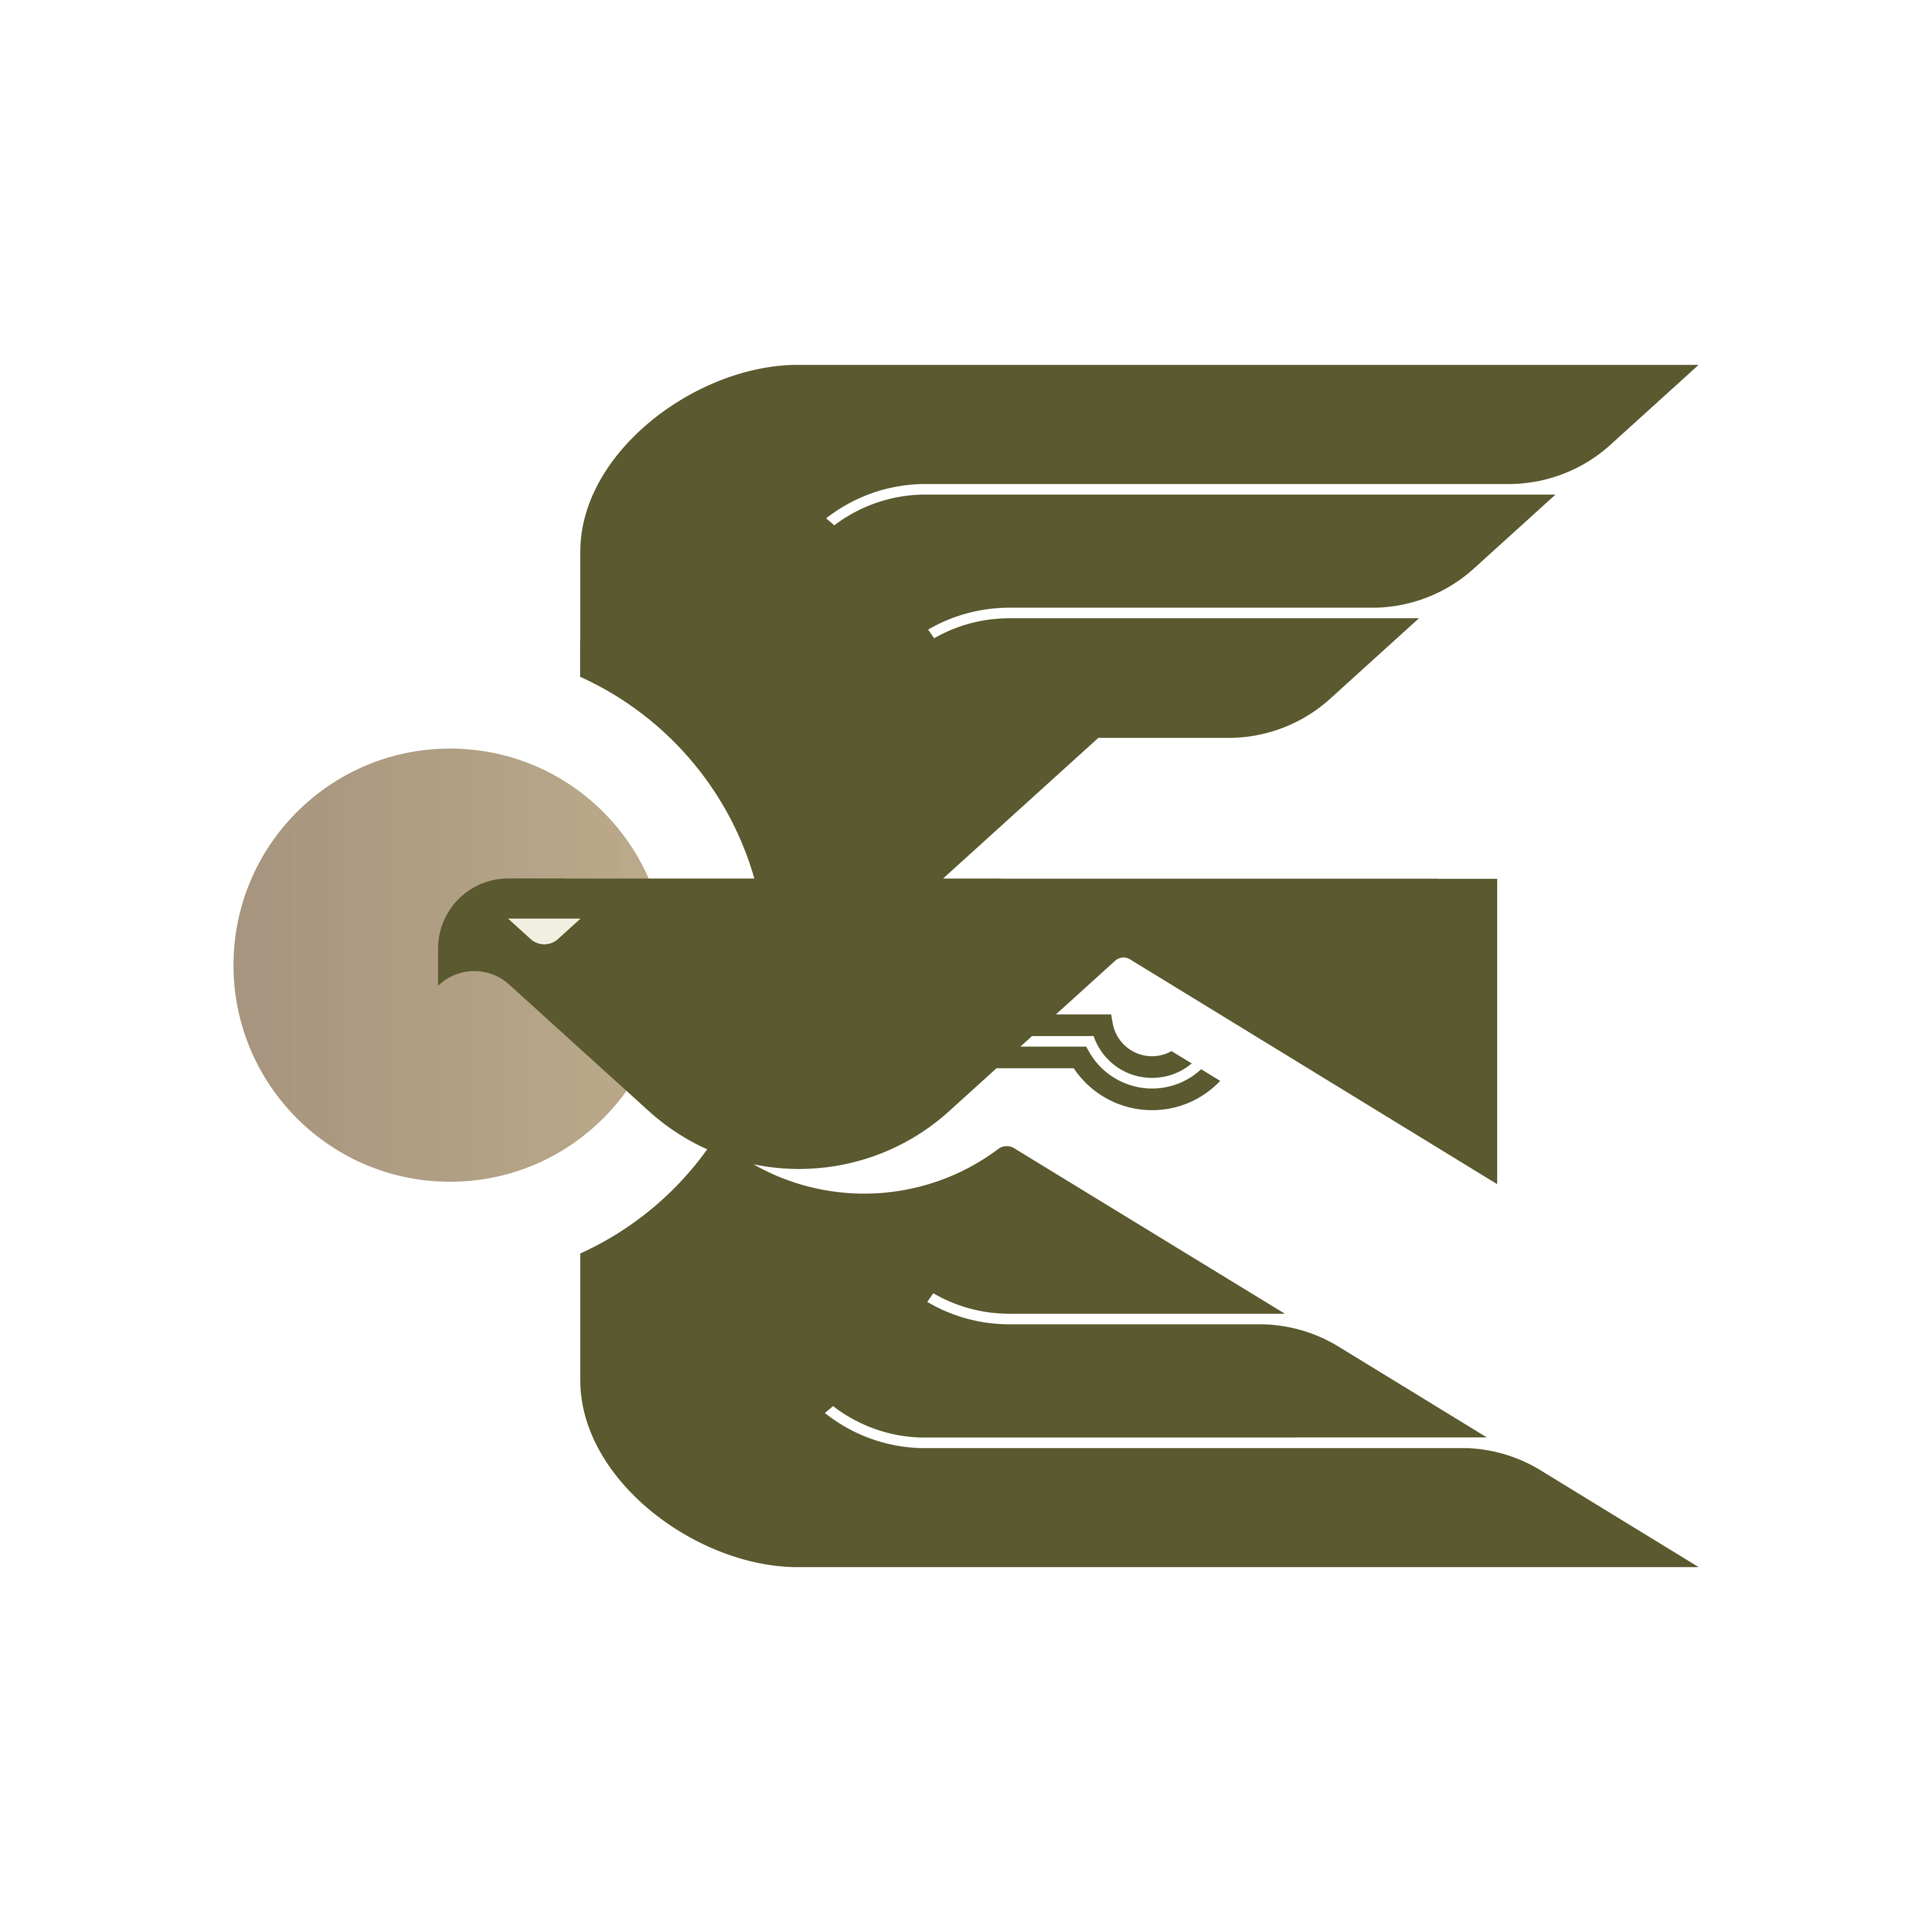 Eagle logo design by logo designer Hatch Creative for your inspiration and for the worlds largest logo competition